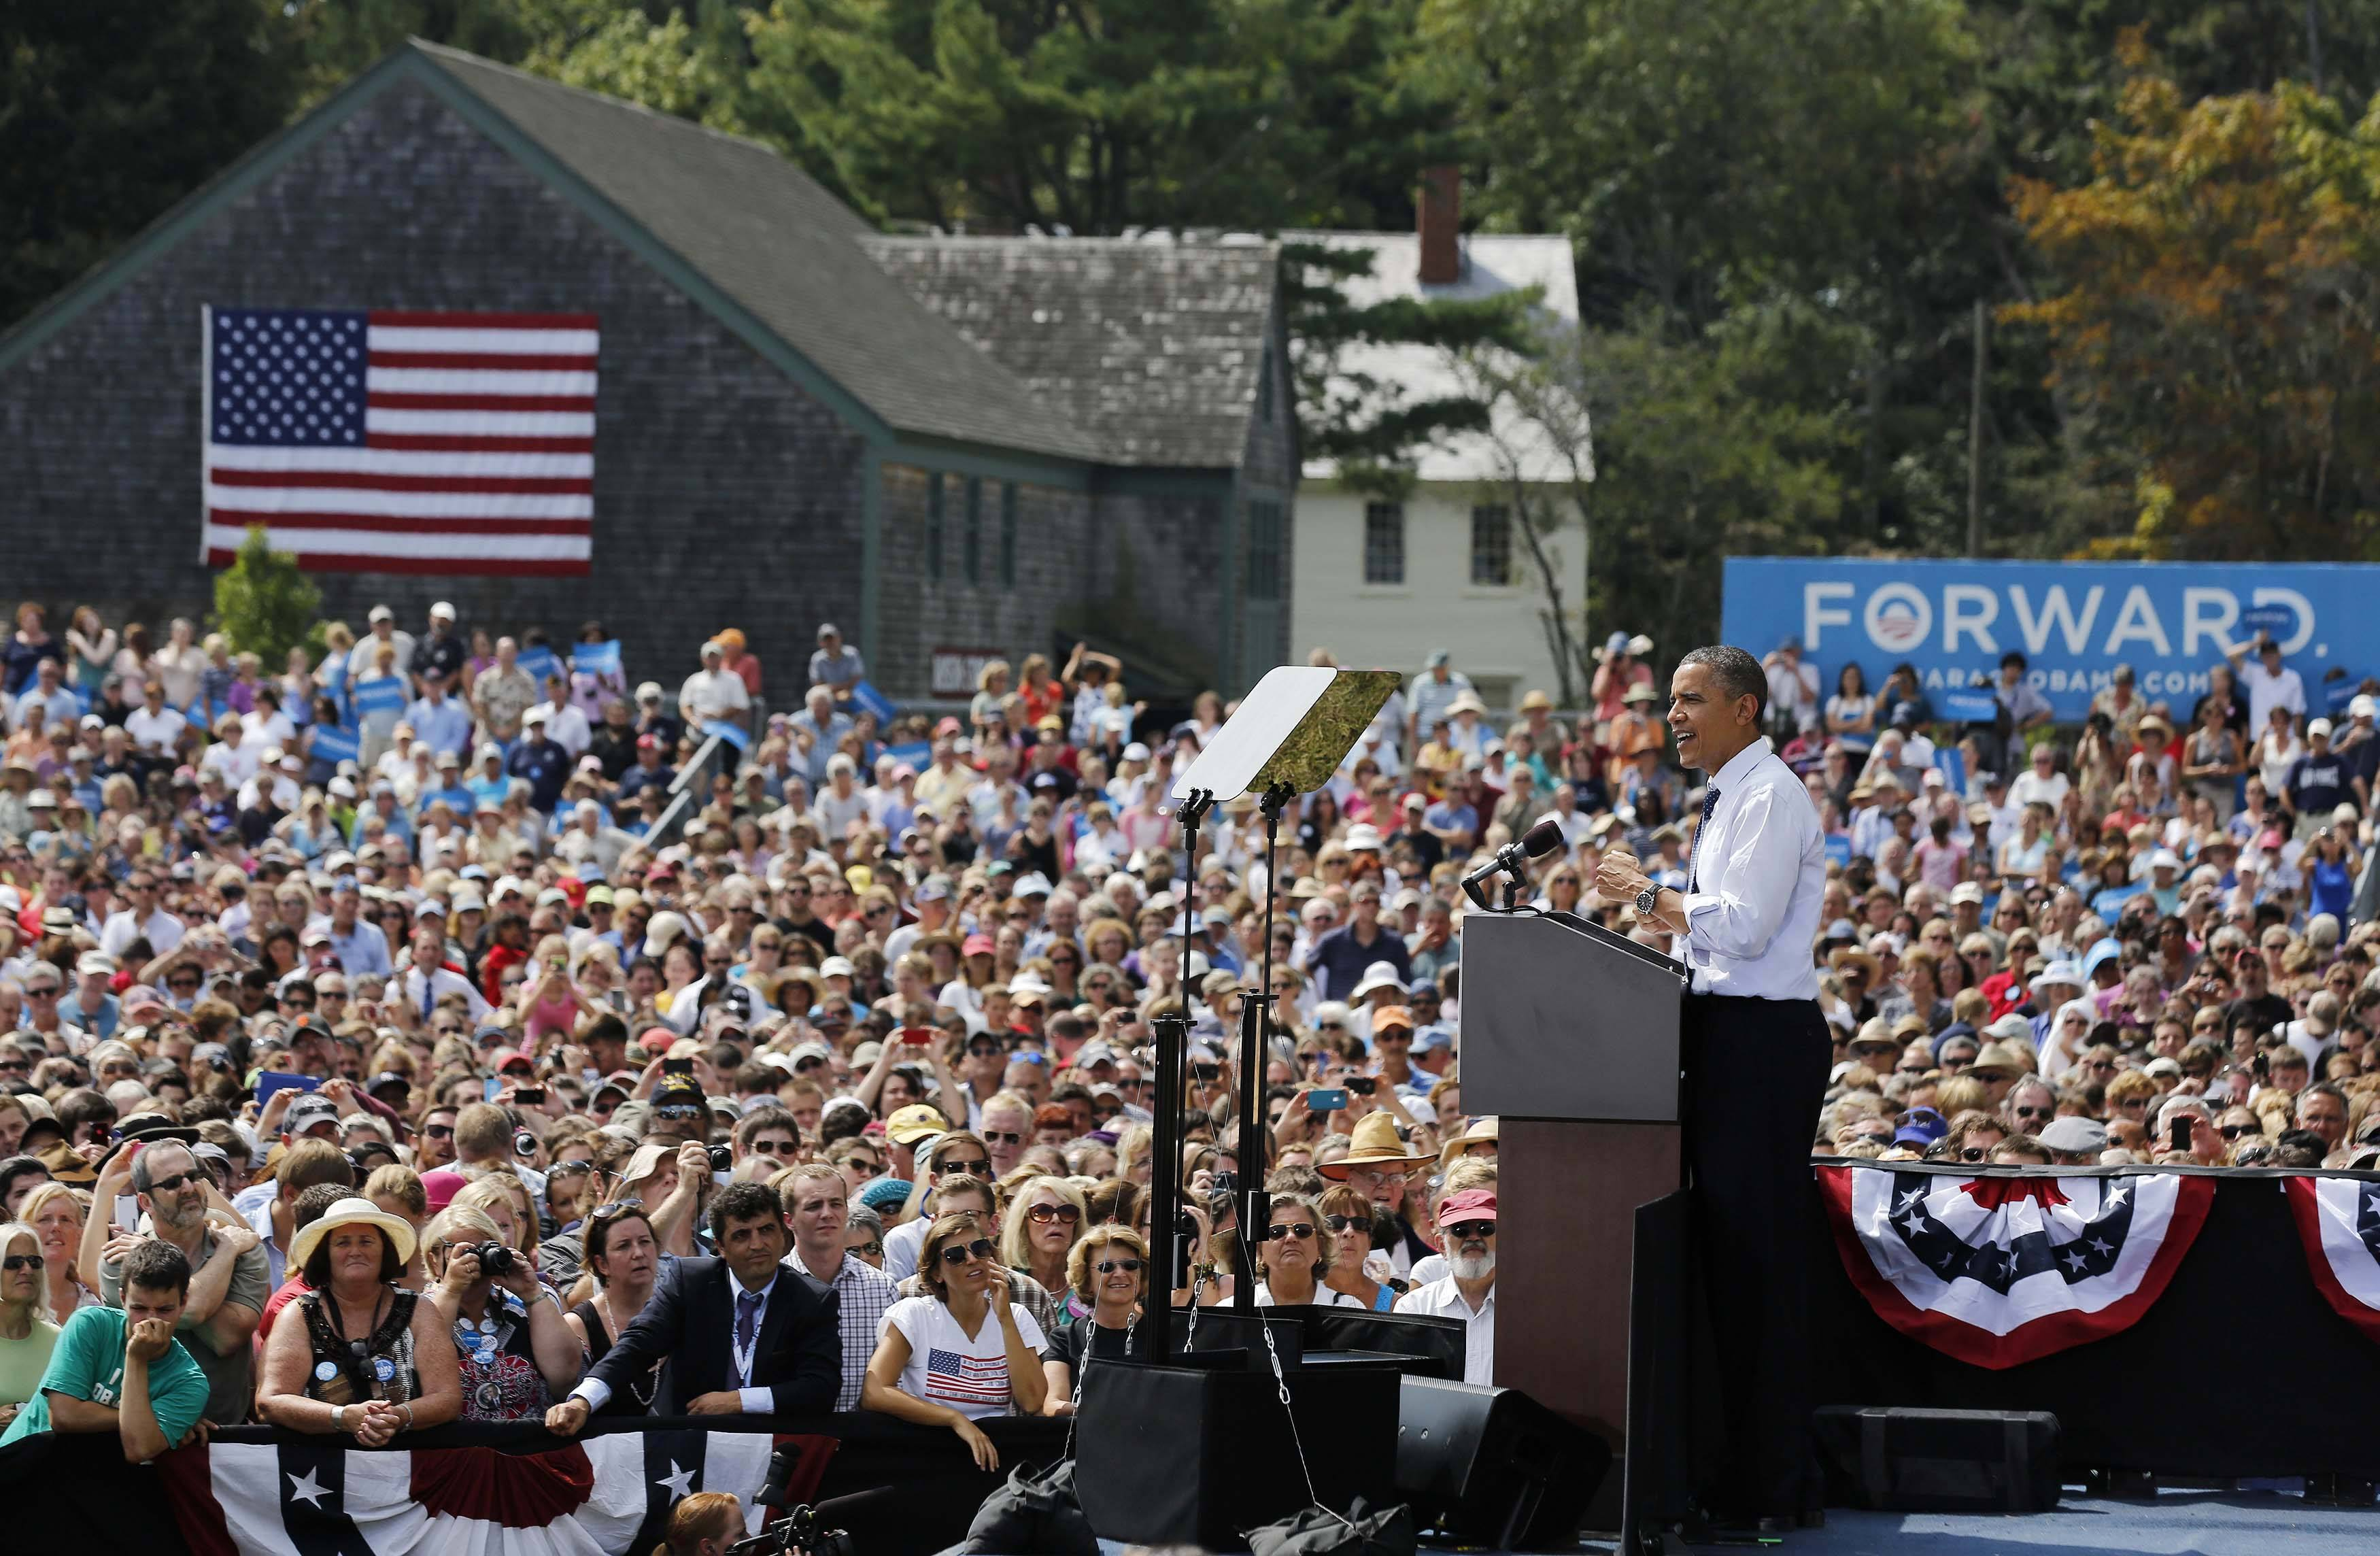 President Barack Obama speaks at a campaign event at the Strawbery Banke Museum in Portsmouth, New Hampshire. (Larry Downing/Reuters)